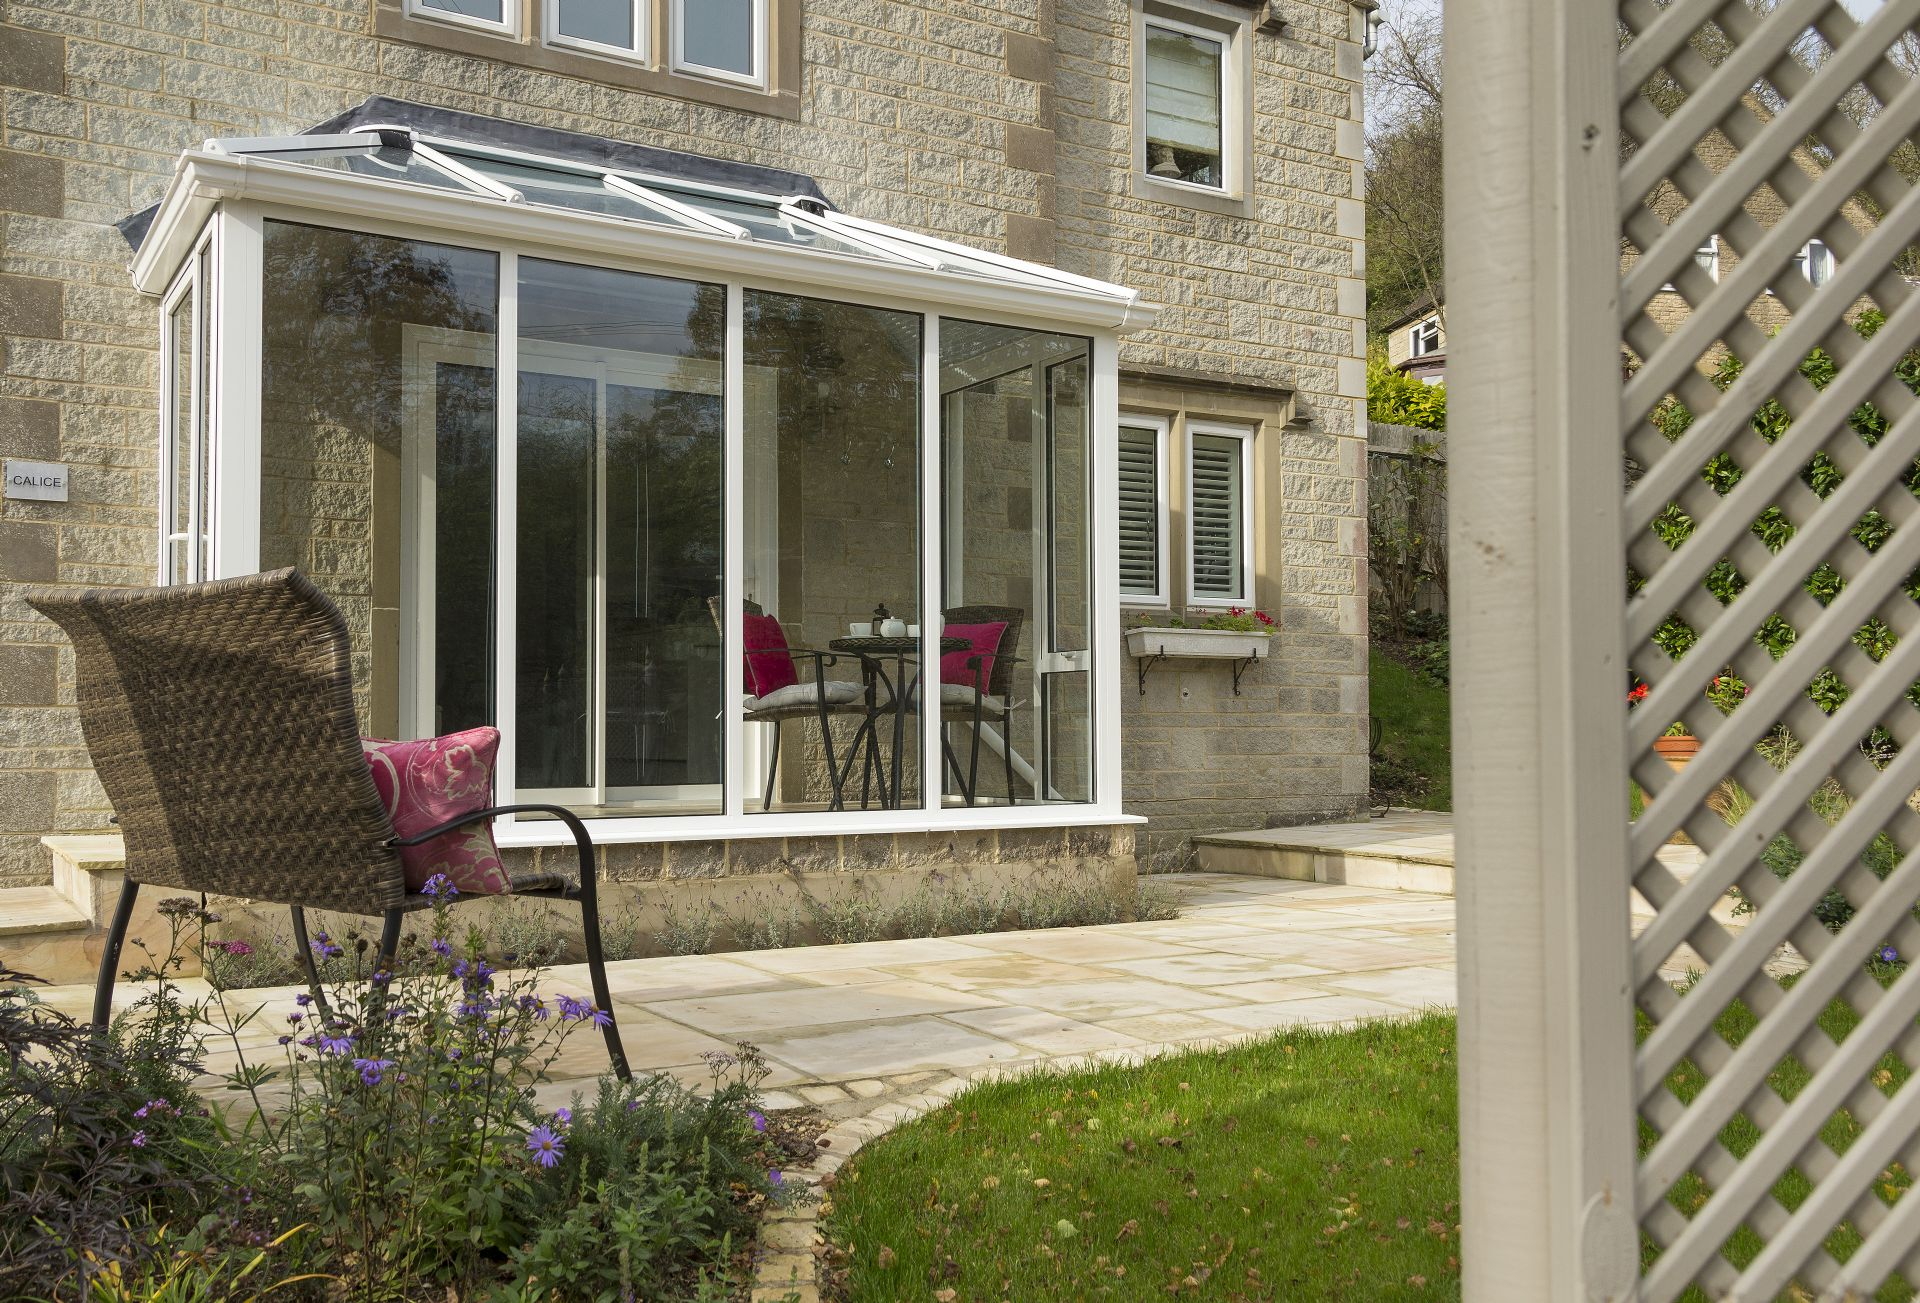 There is a second set of table and chairs in the small conservatory which looks onto the garden